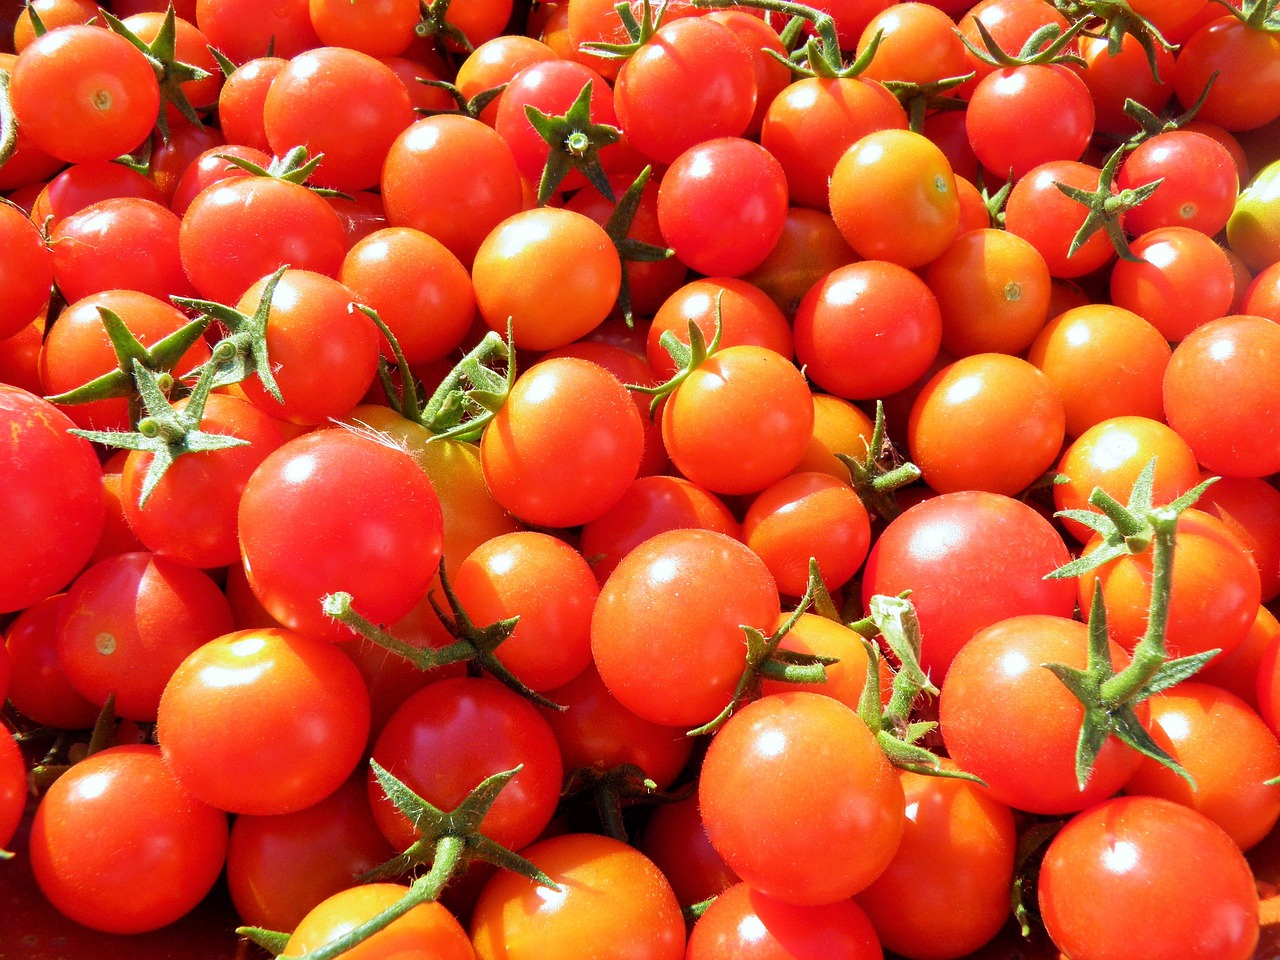 You only need one packet of cherry tomato seeds. The harvest is plentiful.